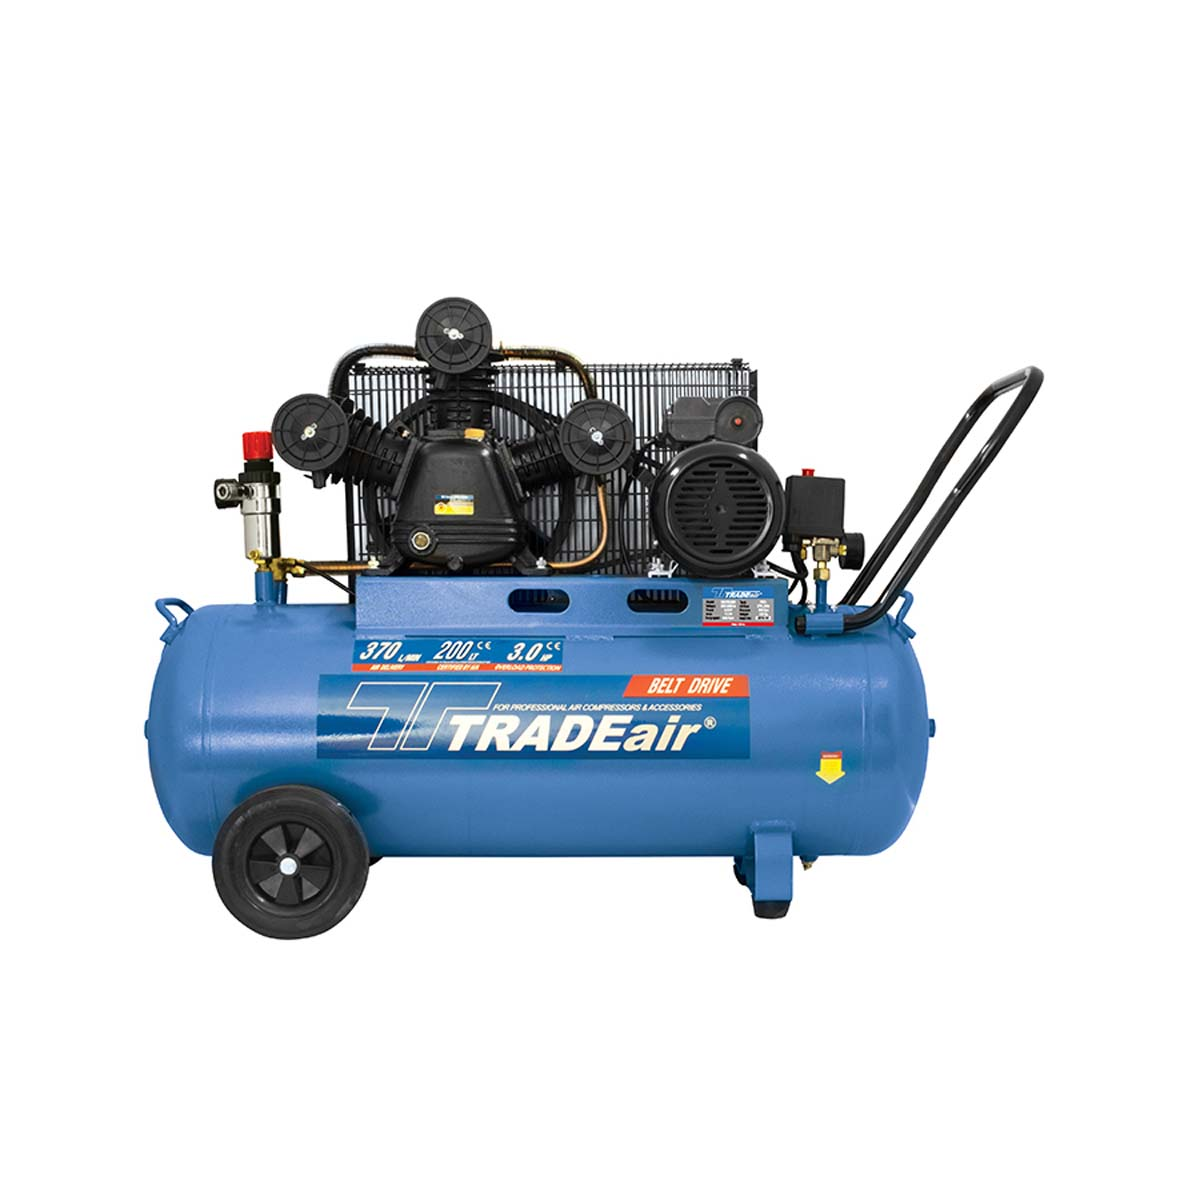 tradeair-mcfrc229-belt-drive-compressor